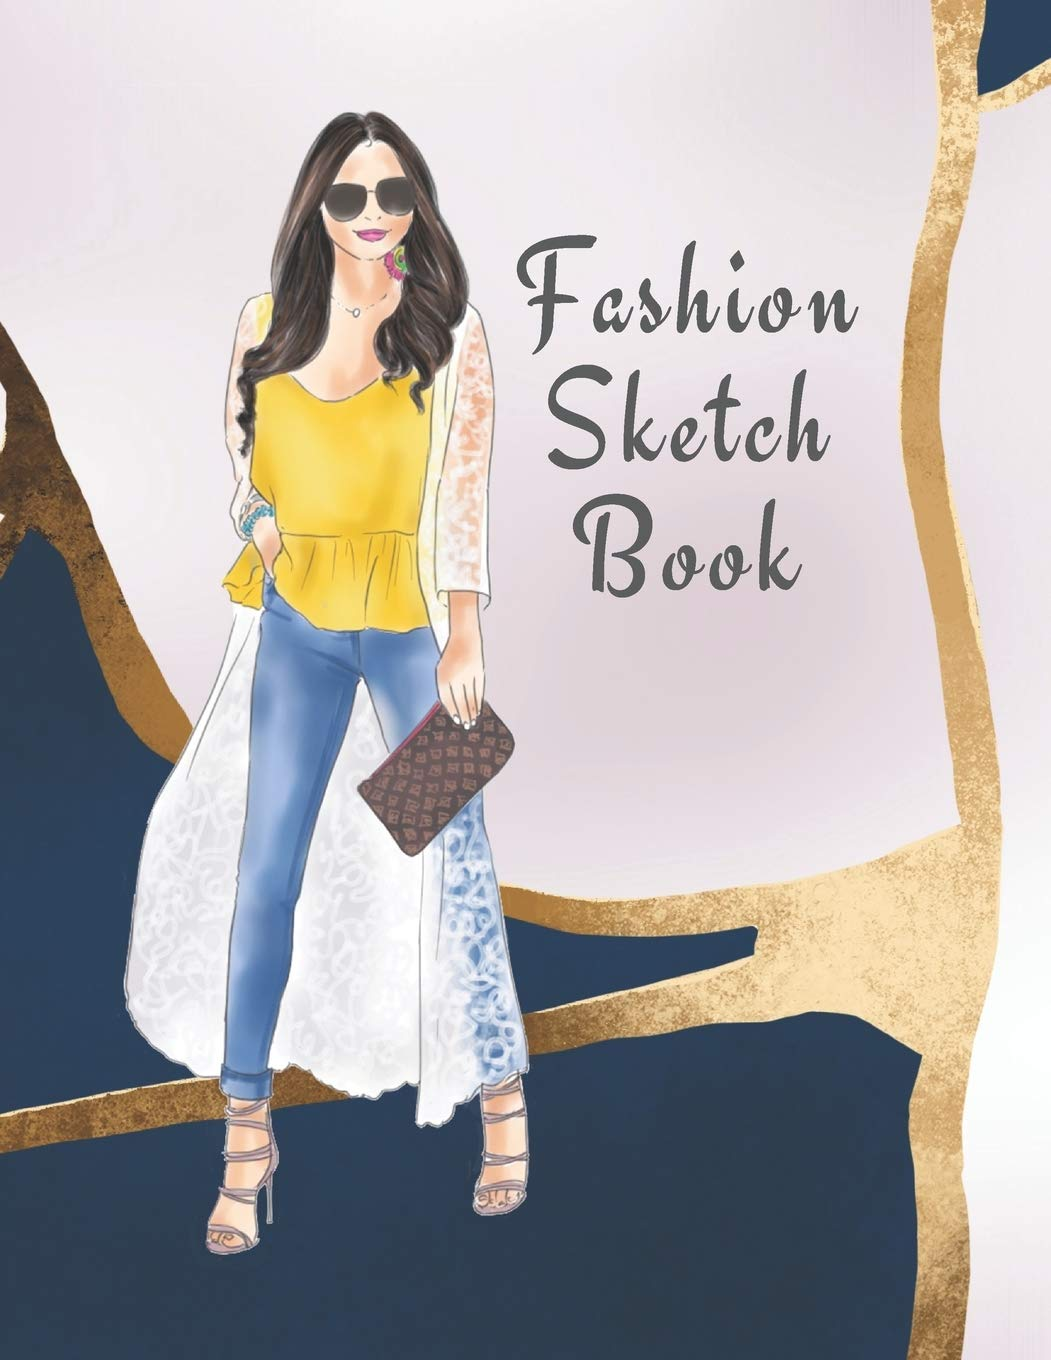 Fashion Sketch Book The Book For Sketching Your Artistic Fashion Design Ideas Including 2 Women Line Shapes Silhouettes To Help You Sketch Draw Your Inspiration And Passion 122 Pages The Prints You